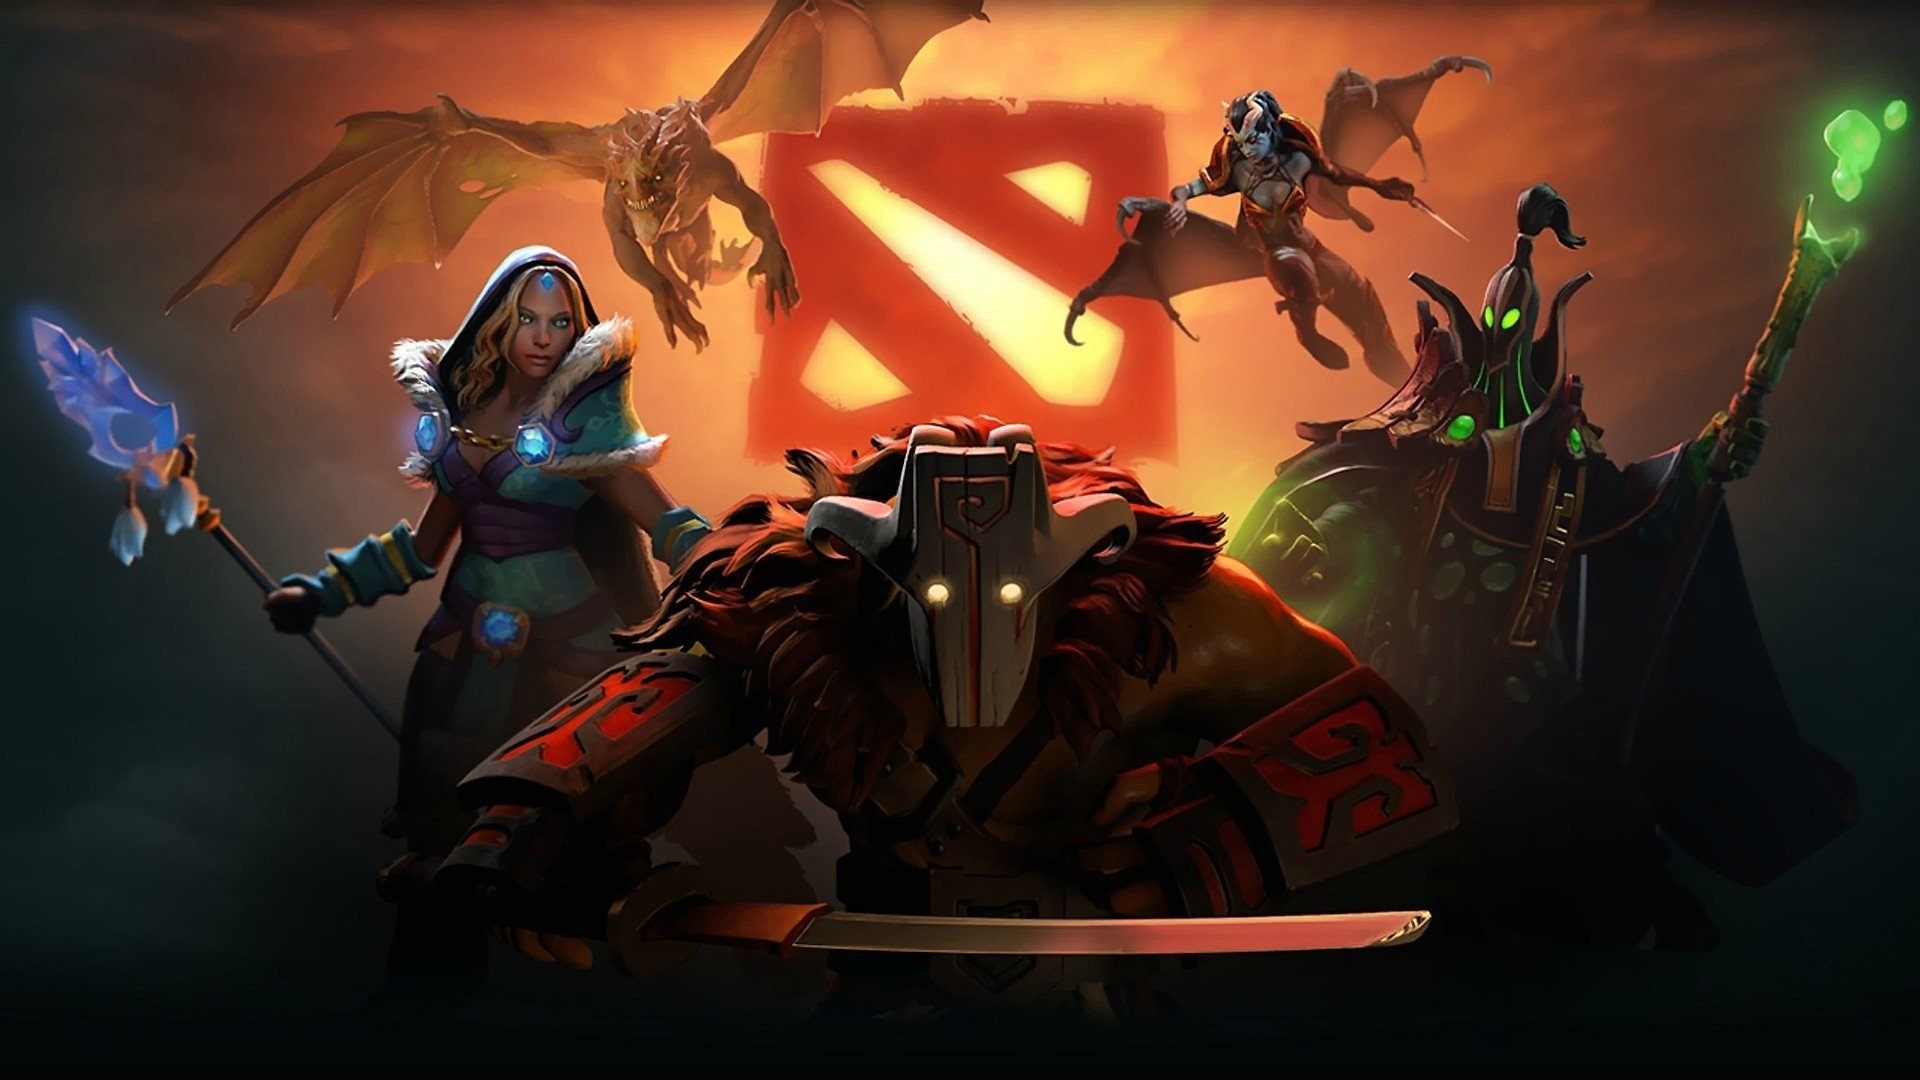 10 Top Dota 2 Hd Wallpaper FULL HD 1080p For PC Background